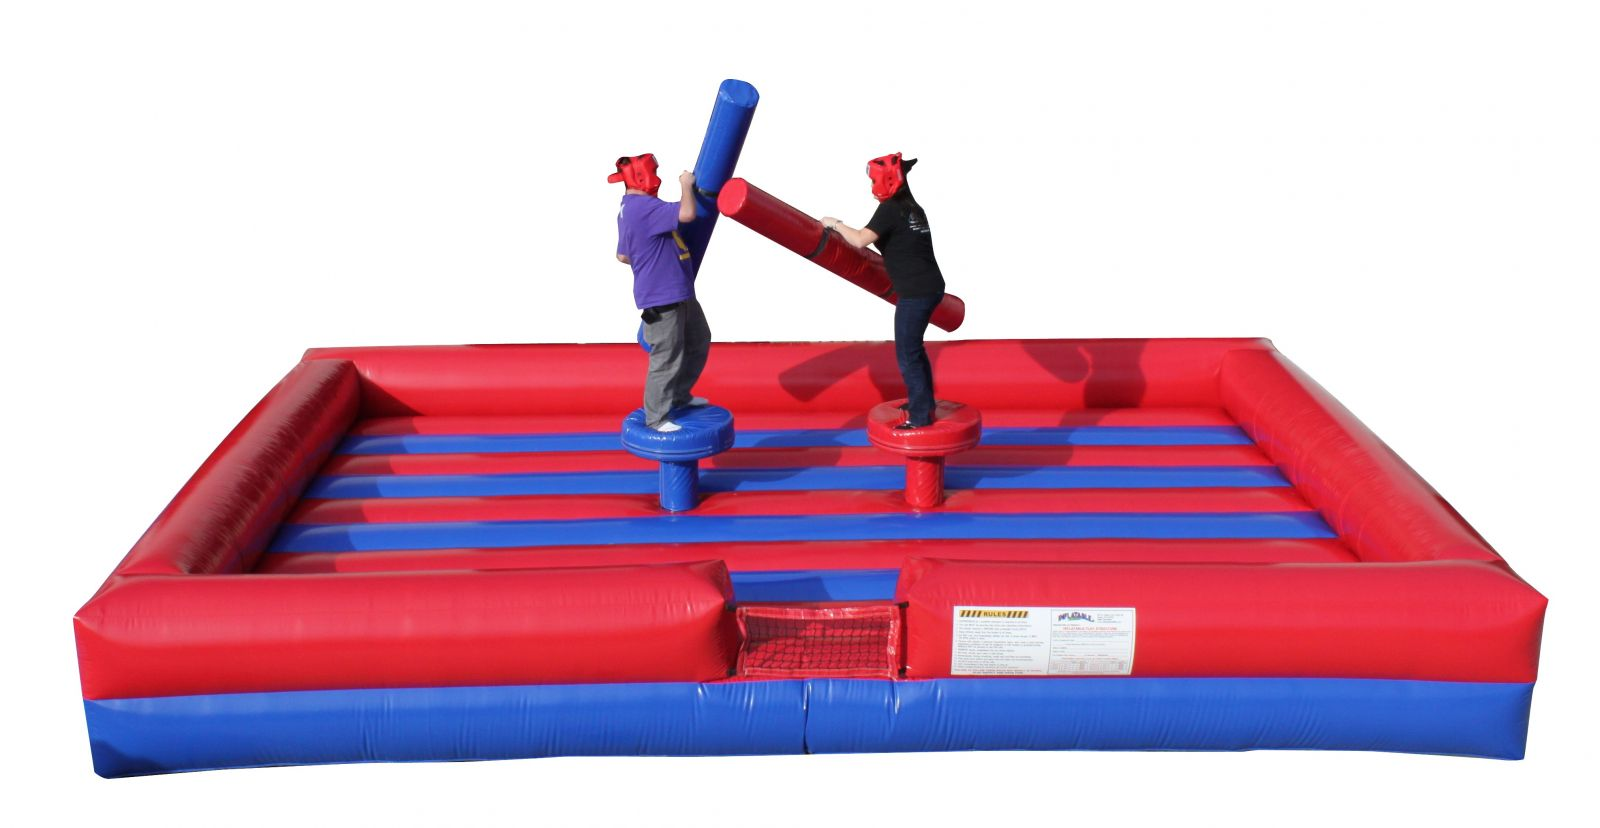 Gladiator Joust Inflatable rental for parties in Austin Texas from Austin Bounce House Rentals